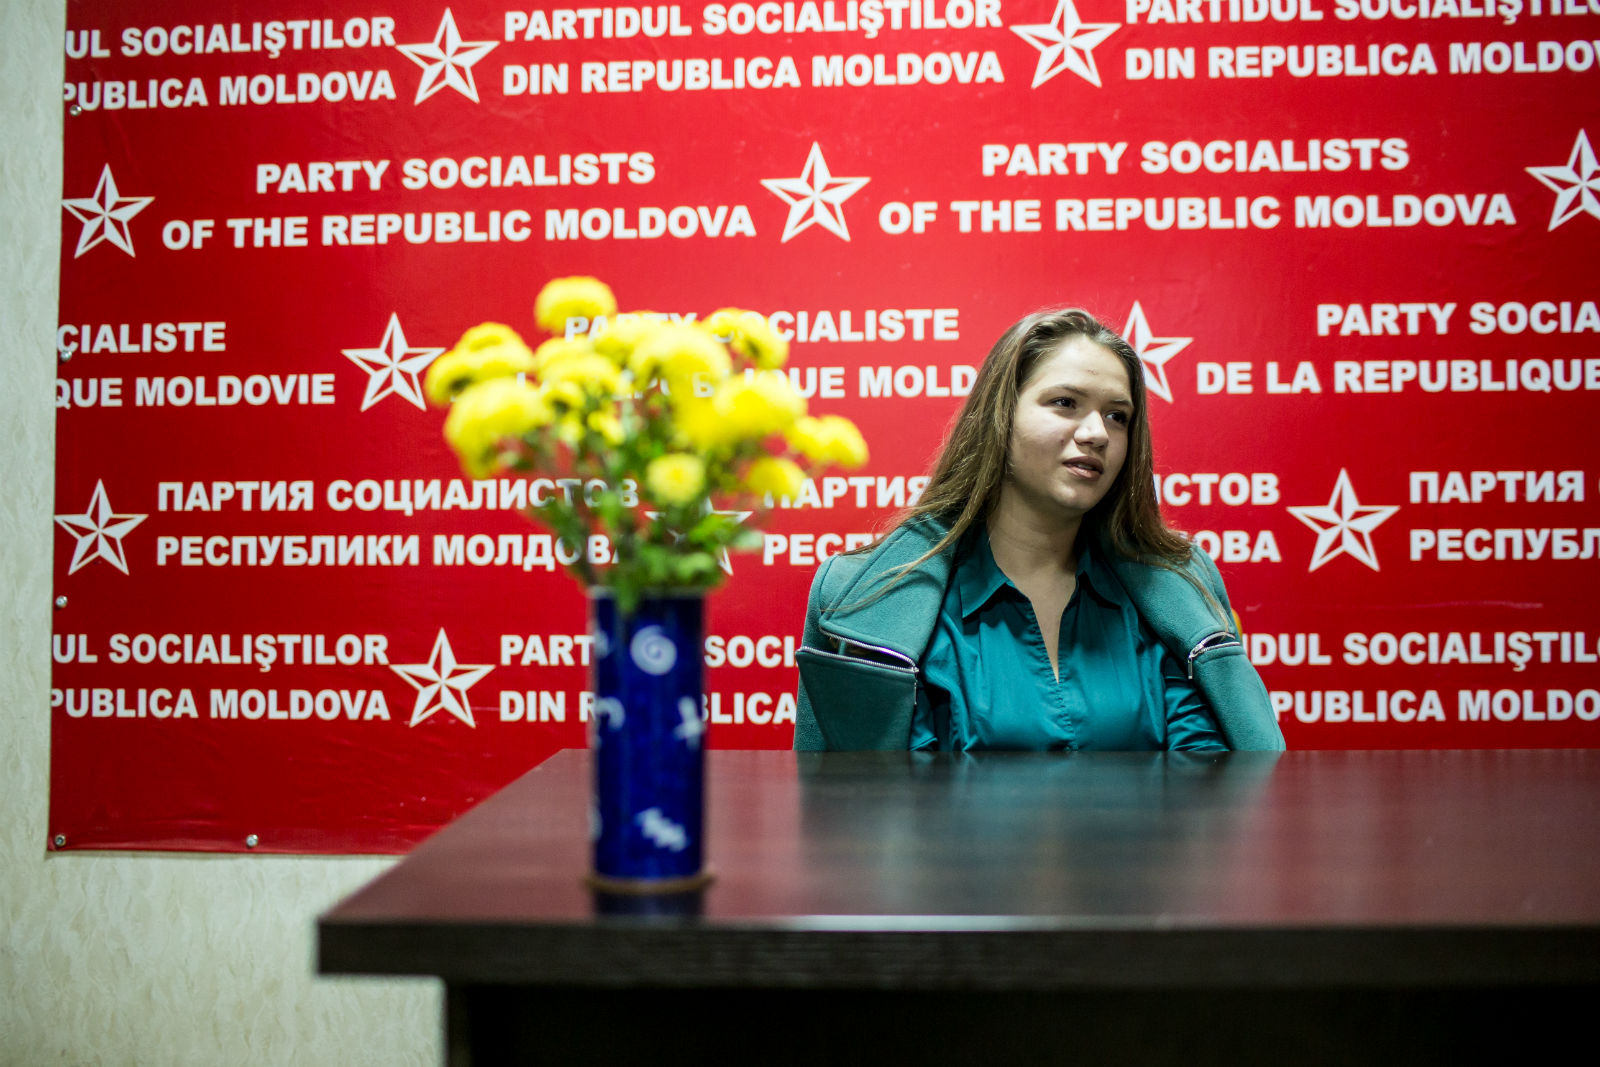 Ecaterina Medvedeva, a member of the Socialist Party's Young Guard, sitting in the party's headquarters.